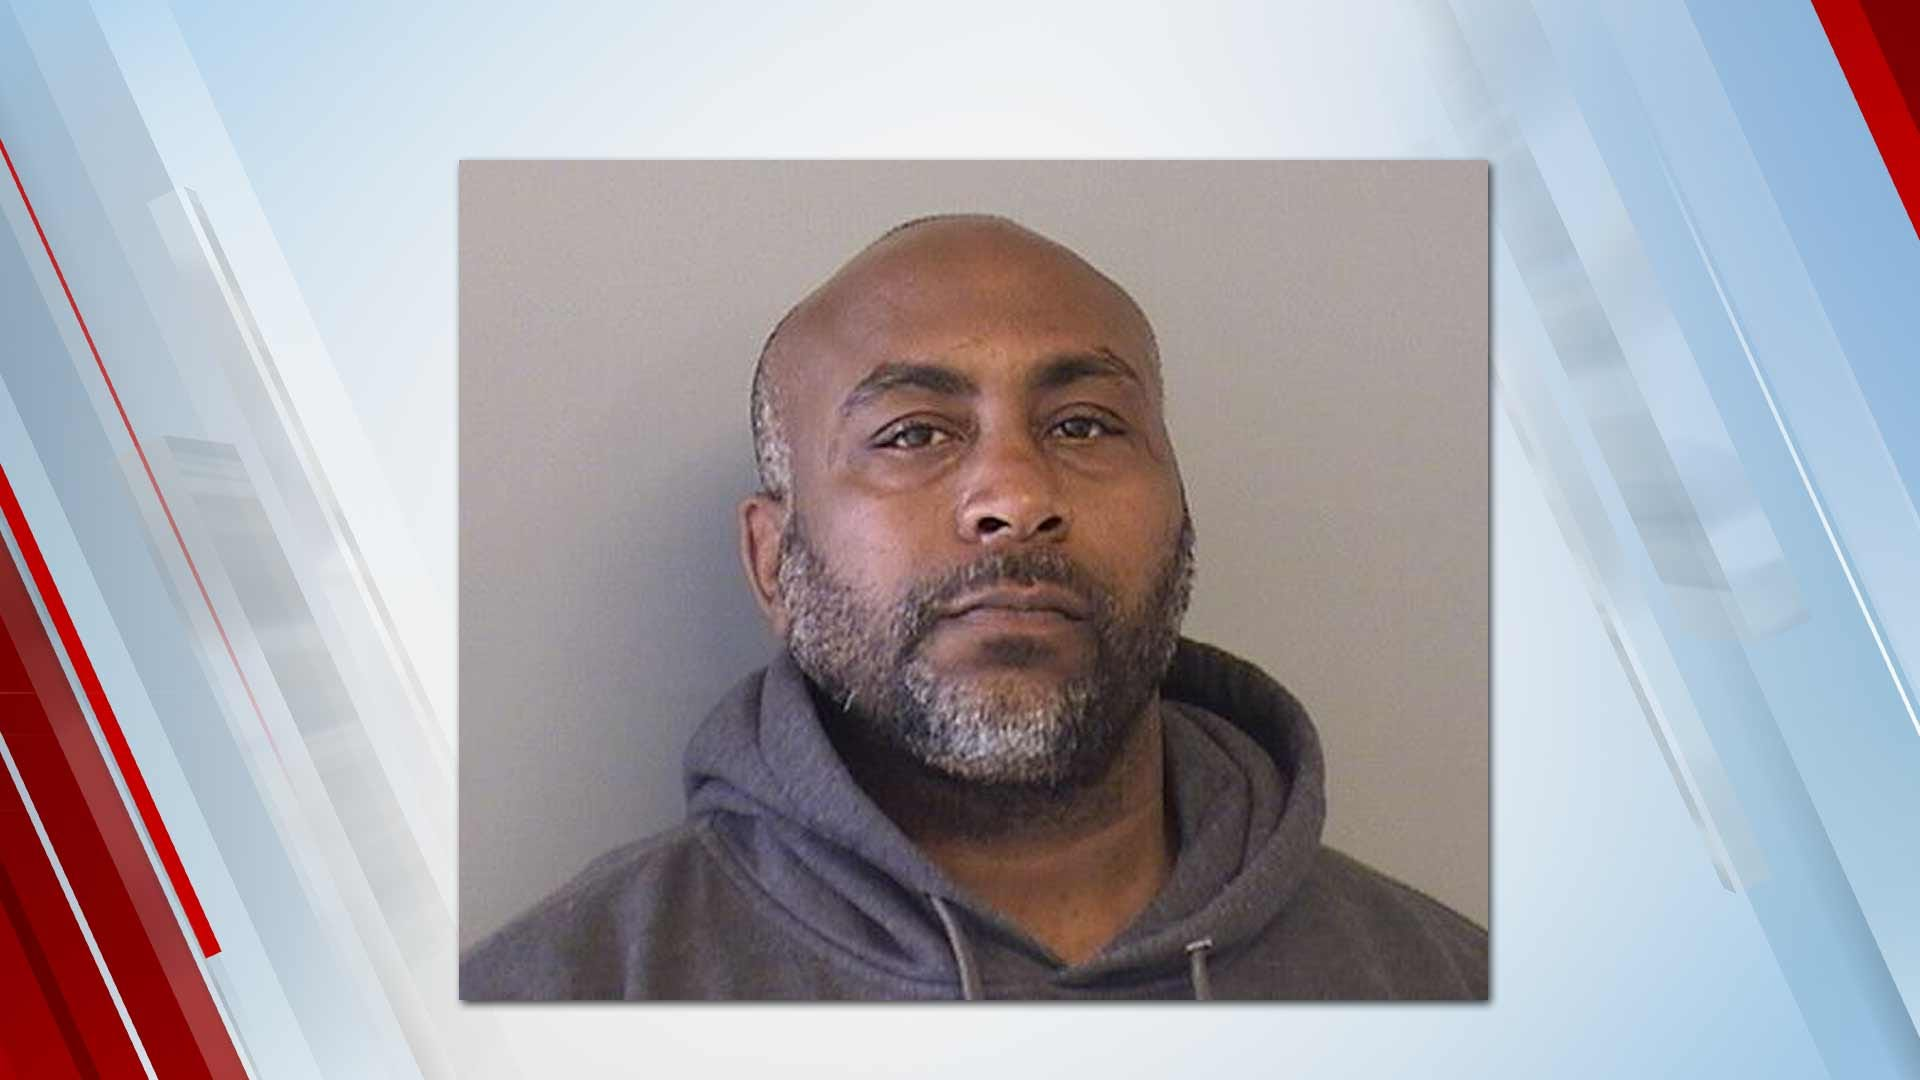 No Charges Filed Against Man In Turley Murder Case